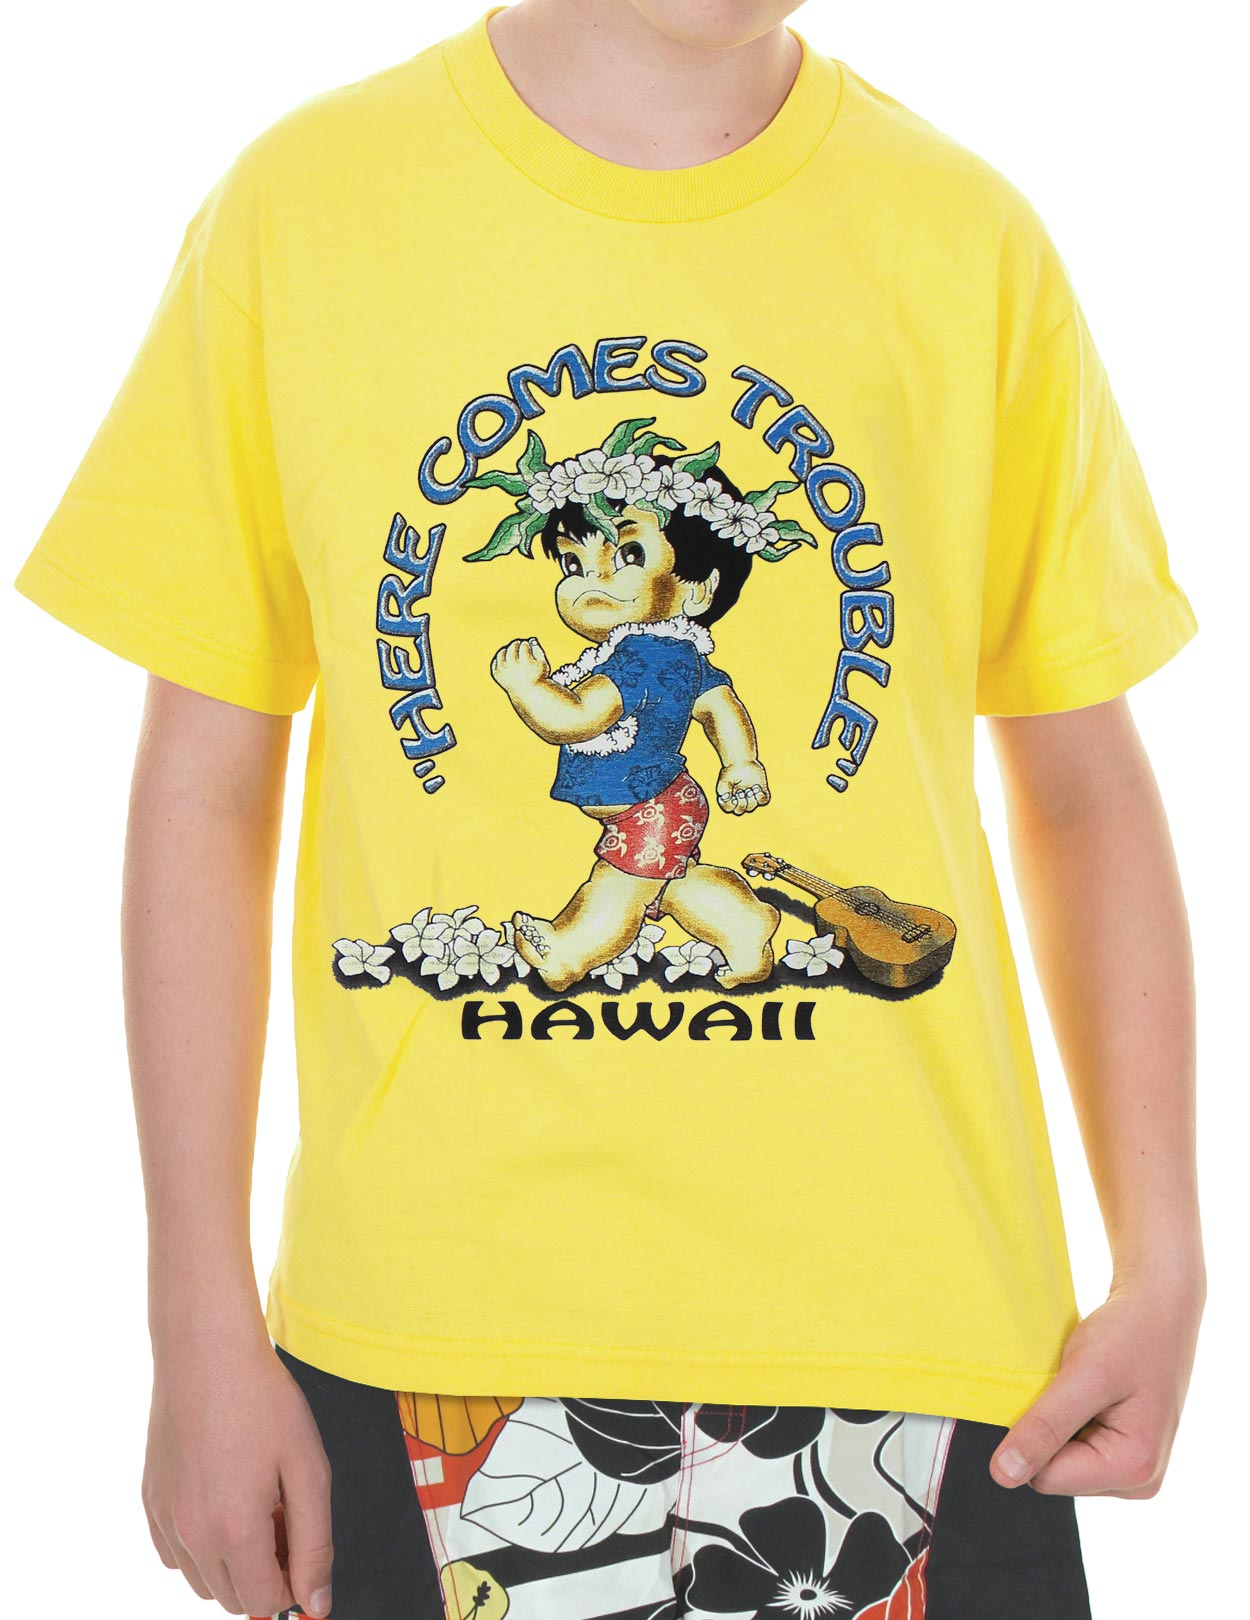 Boys T-Shirts - Here comes Trouble: Shaka Time Hawaii Clothing Store